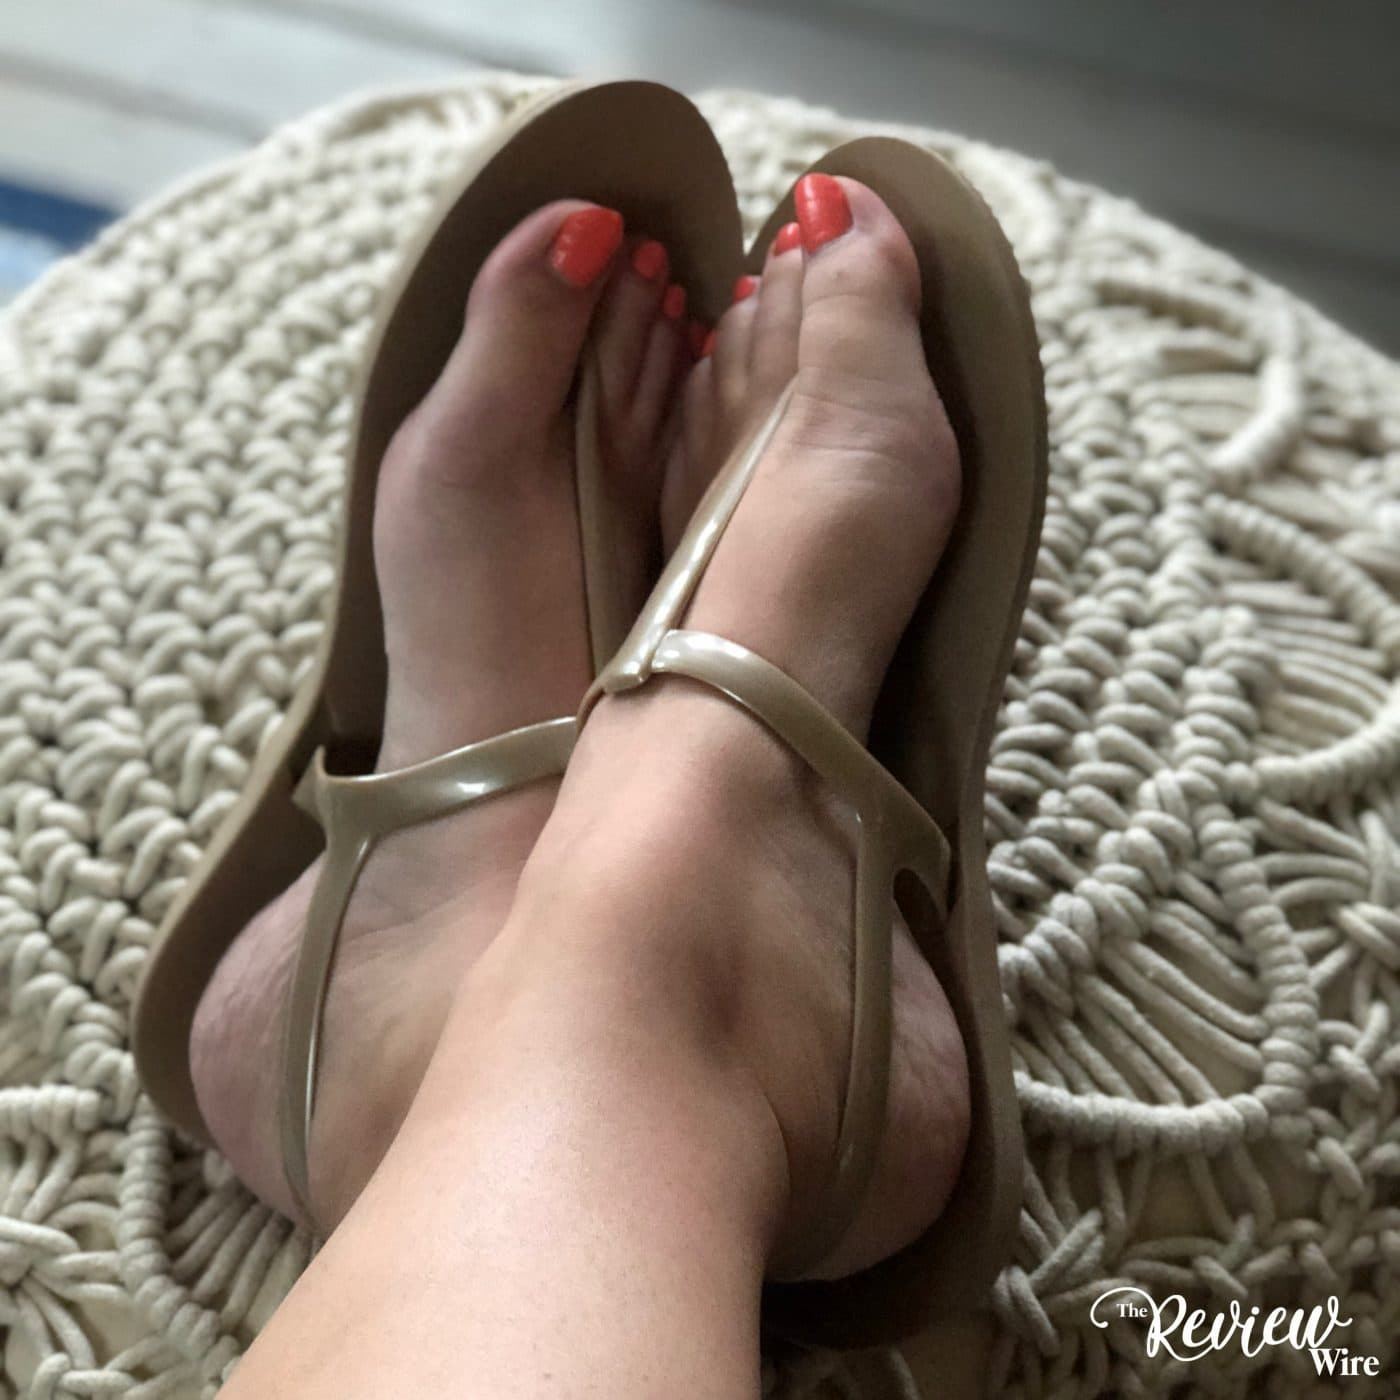 The Review Wire Review: Third Oak Eco-Friendly Sandals